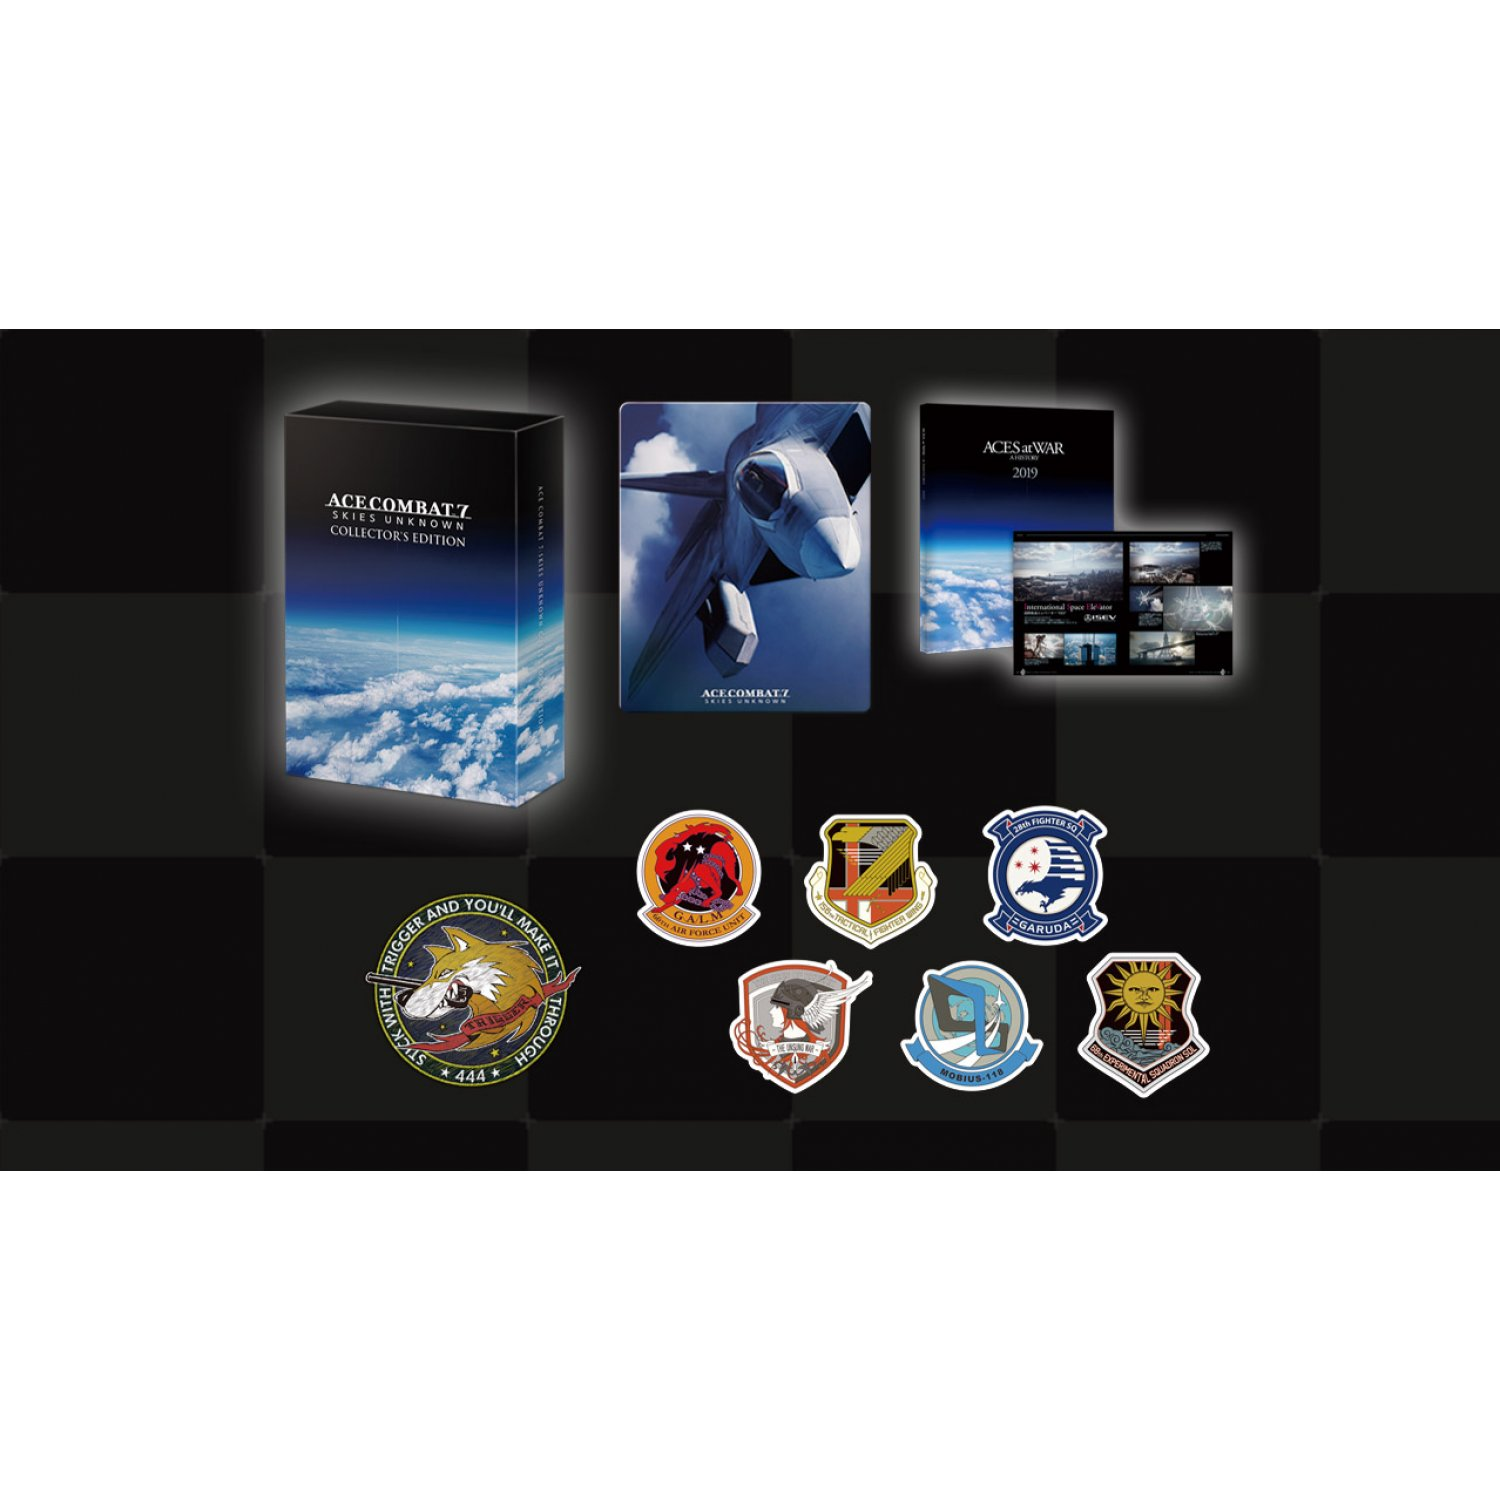 Steelbook FuturePak Ace Combat 7 Steelbook Jeux Video SteelbookV Edition Collector